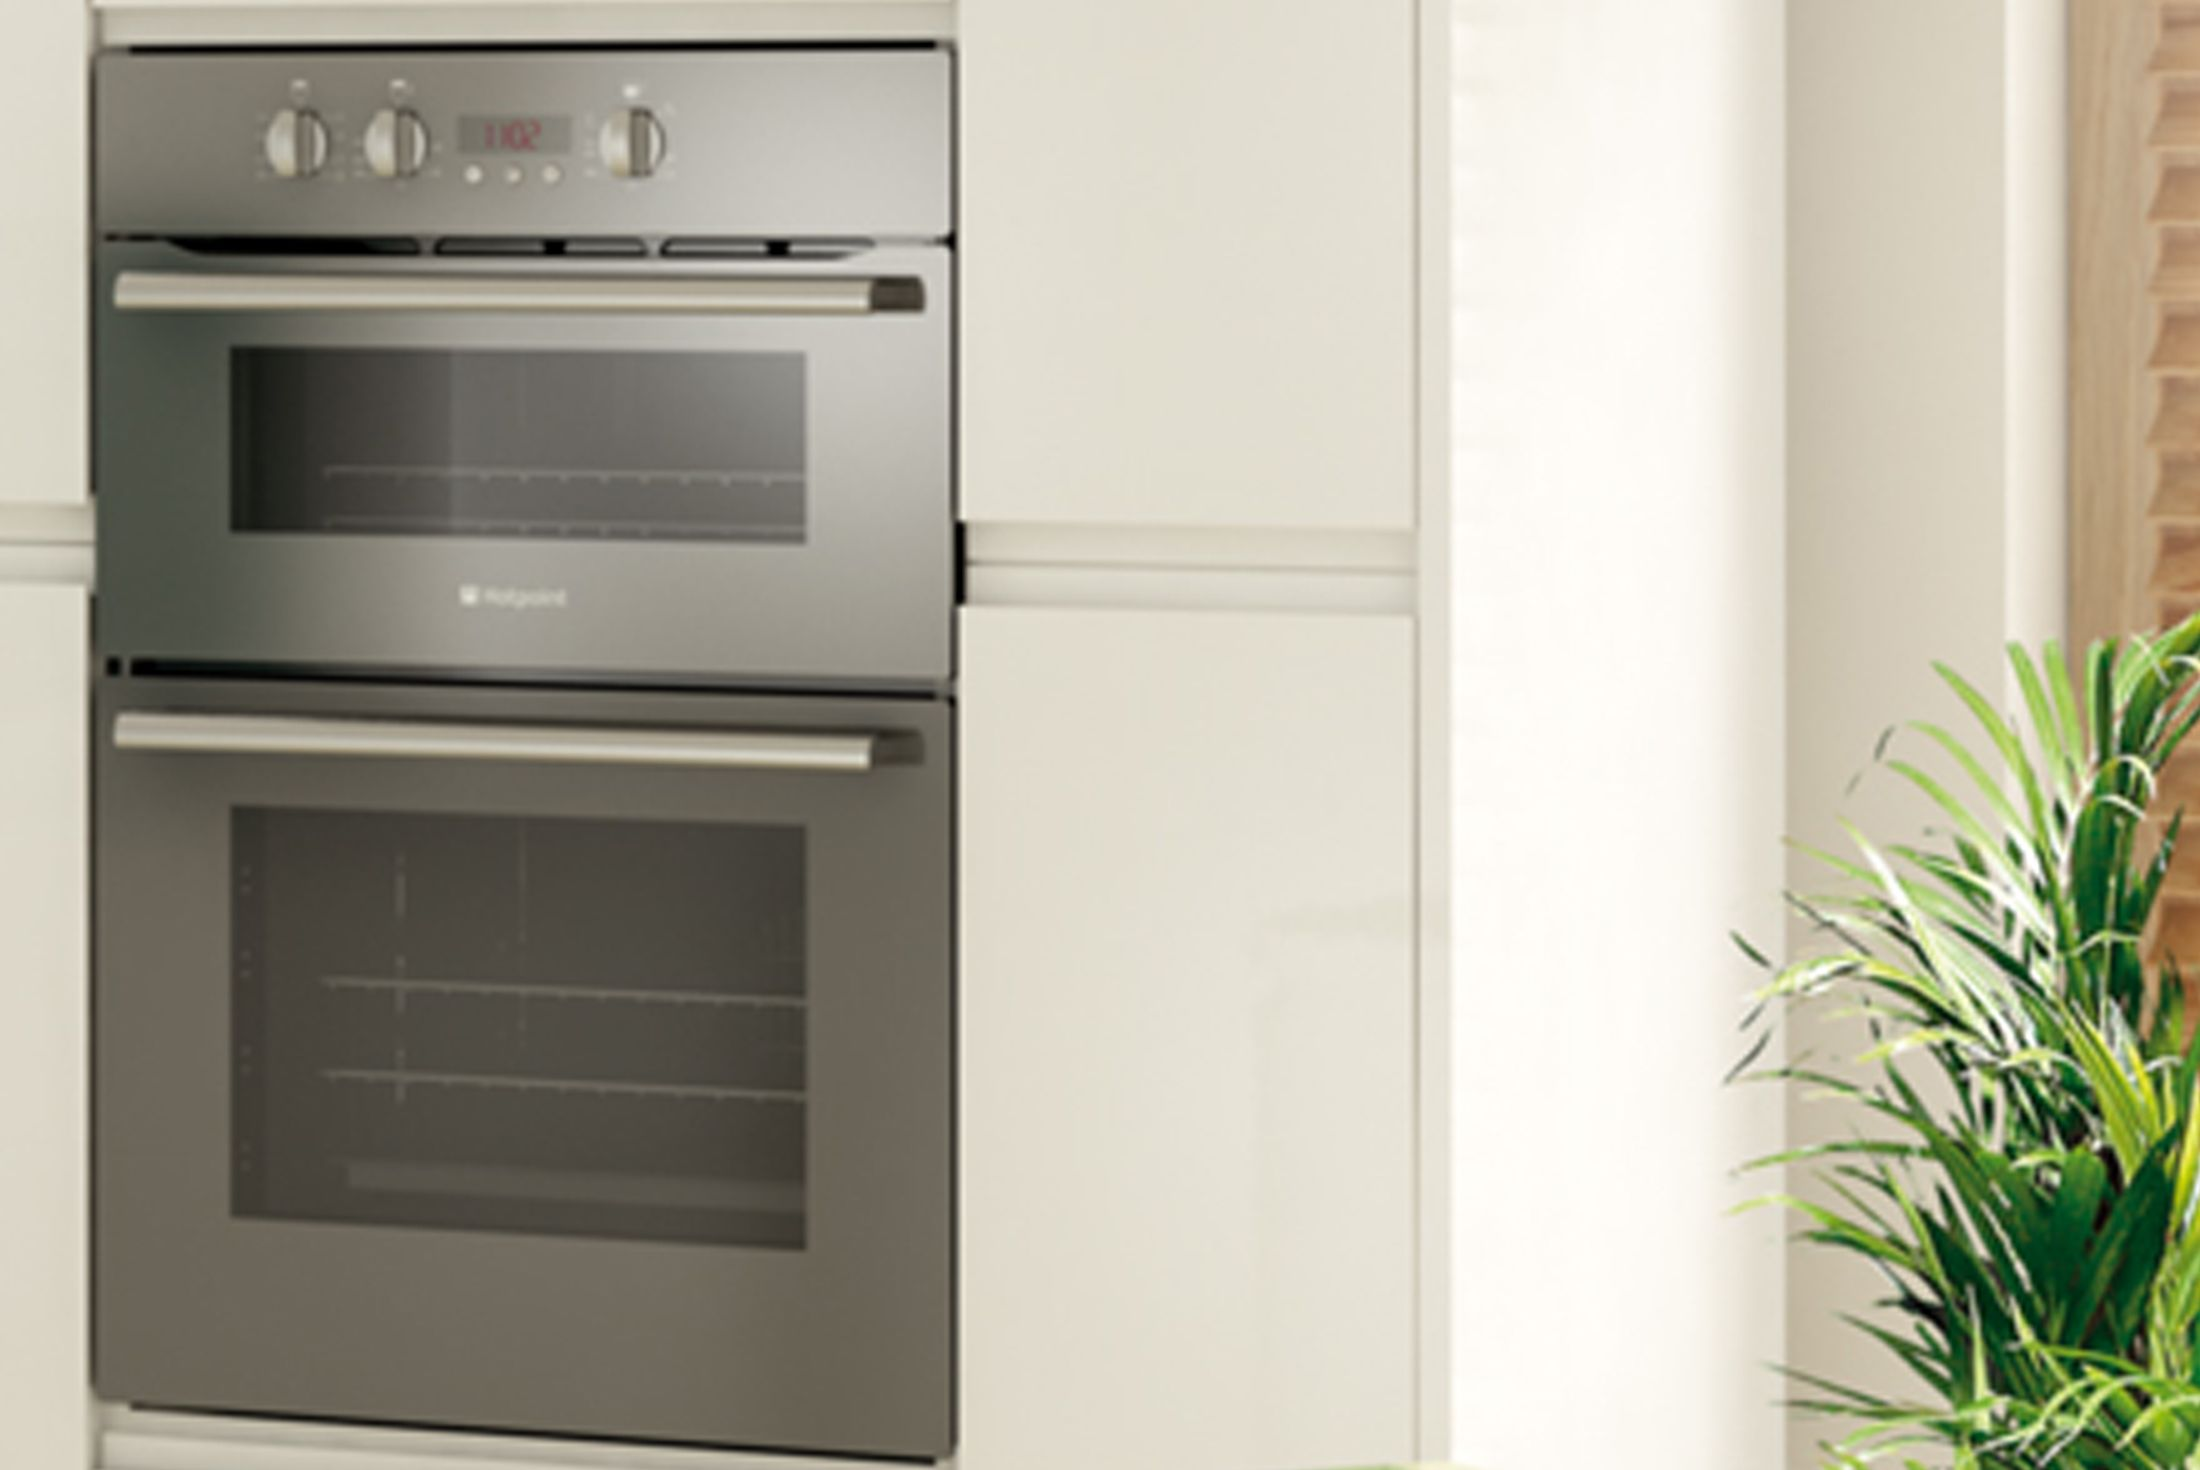 Built in oven buying guide help ideas diy at b q for Eye level oven kitchen designs